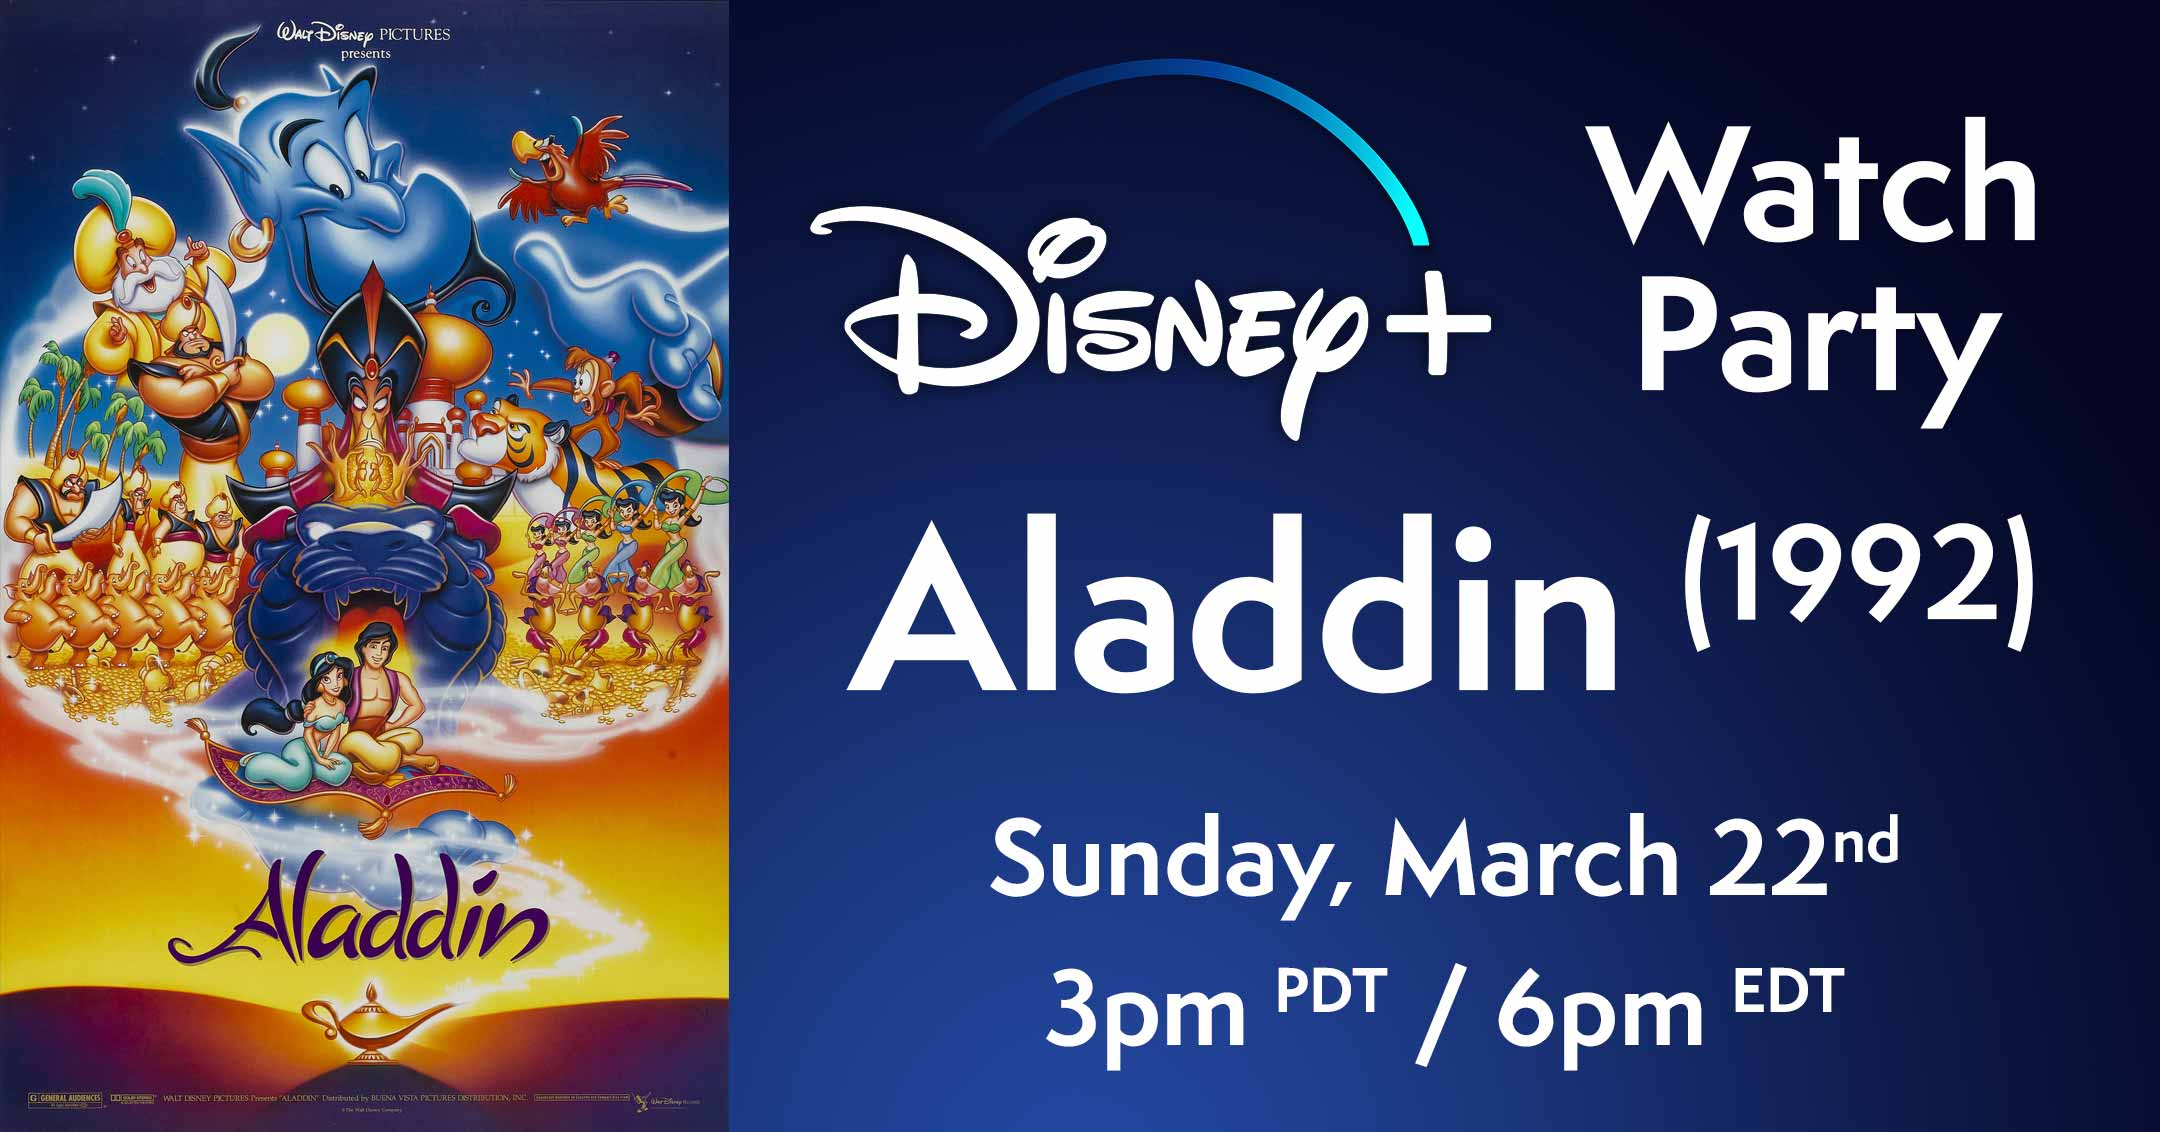 Disney+ Watch Party